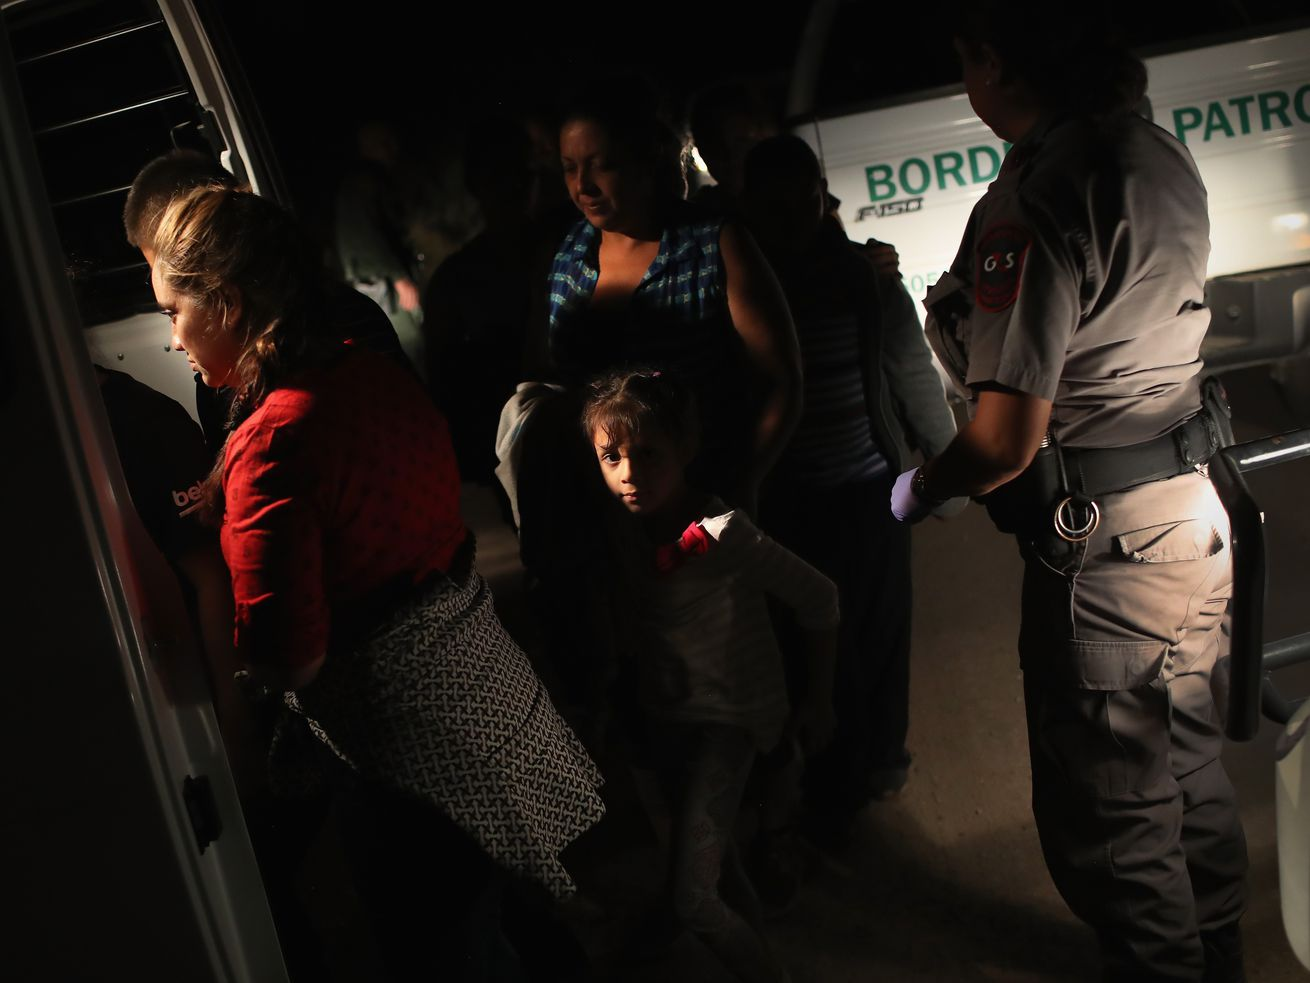 Border Patrol agents detain a group of Central American asylum seekers near the US-Mexico border on June 12, 2018, in McAllen, Texas.